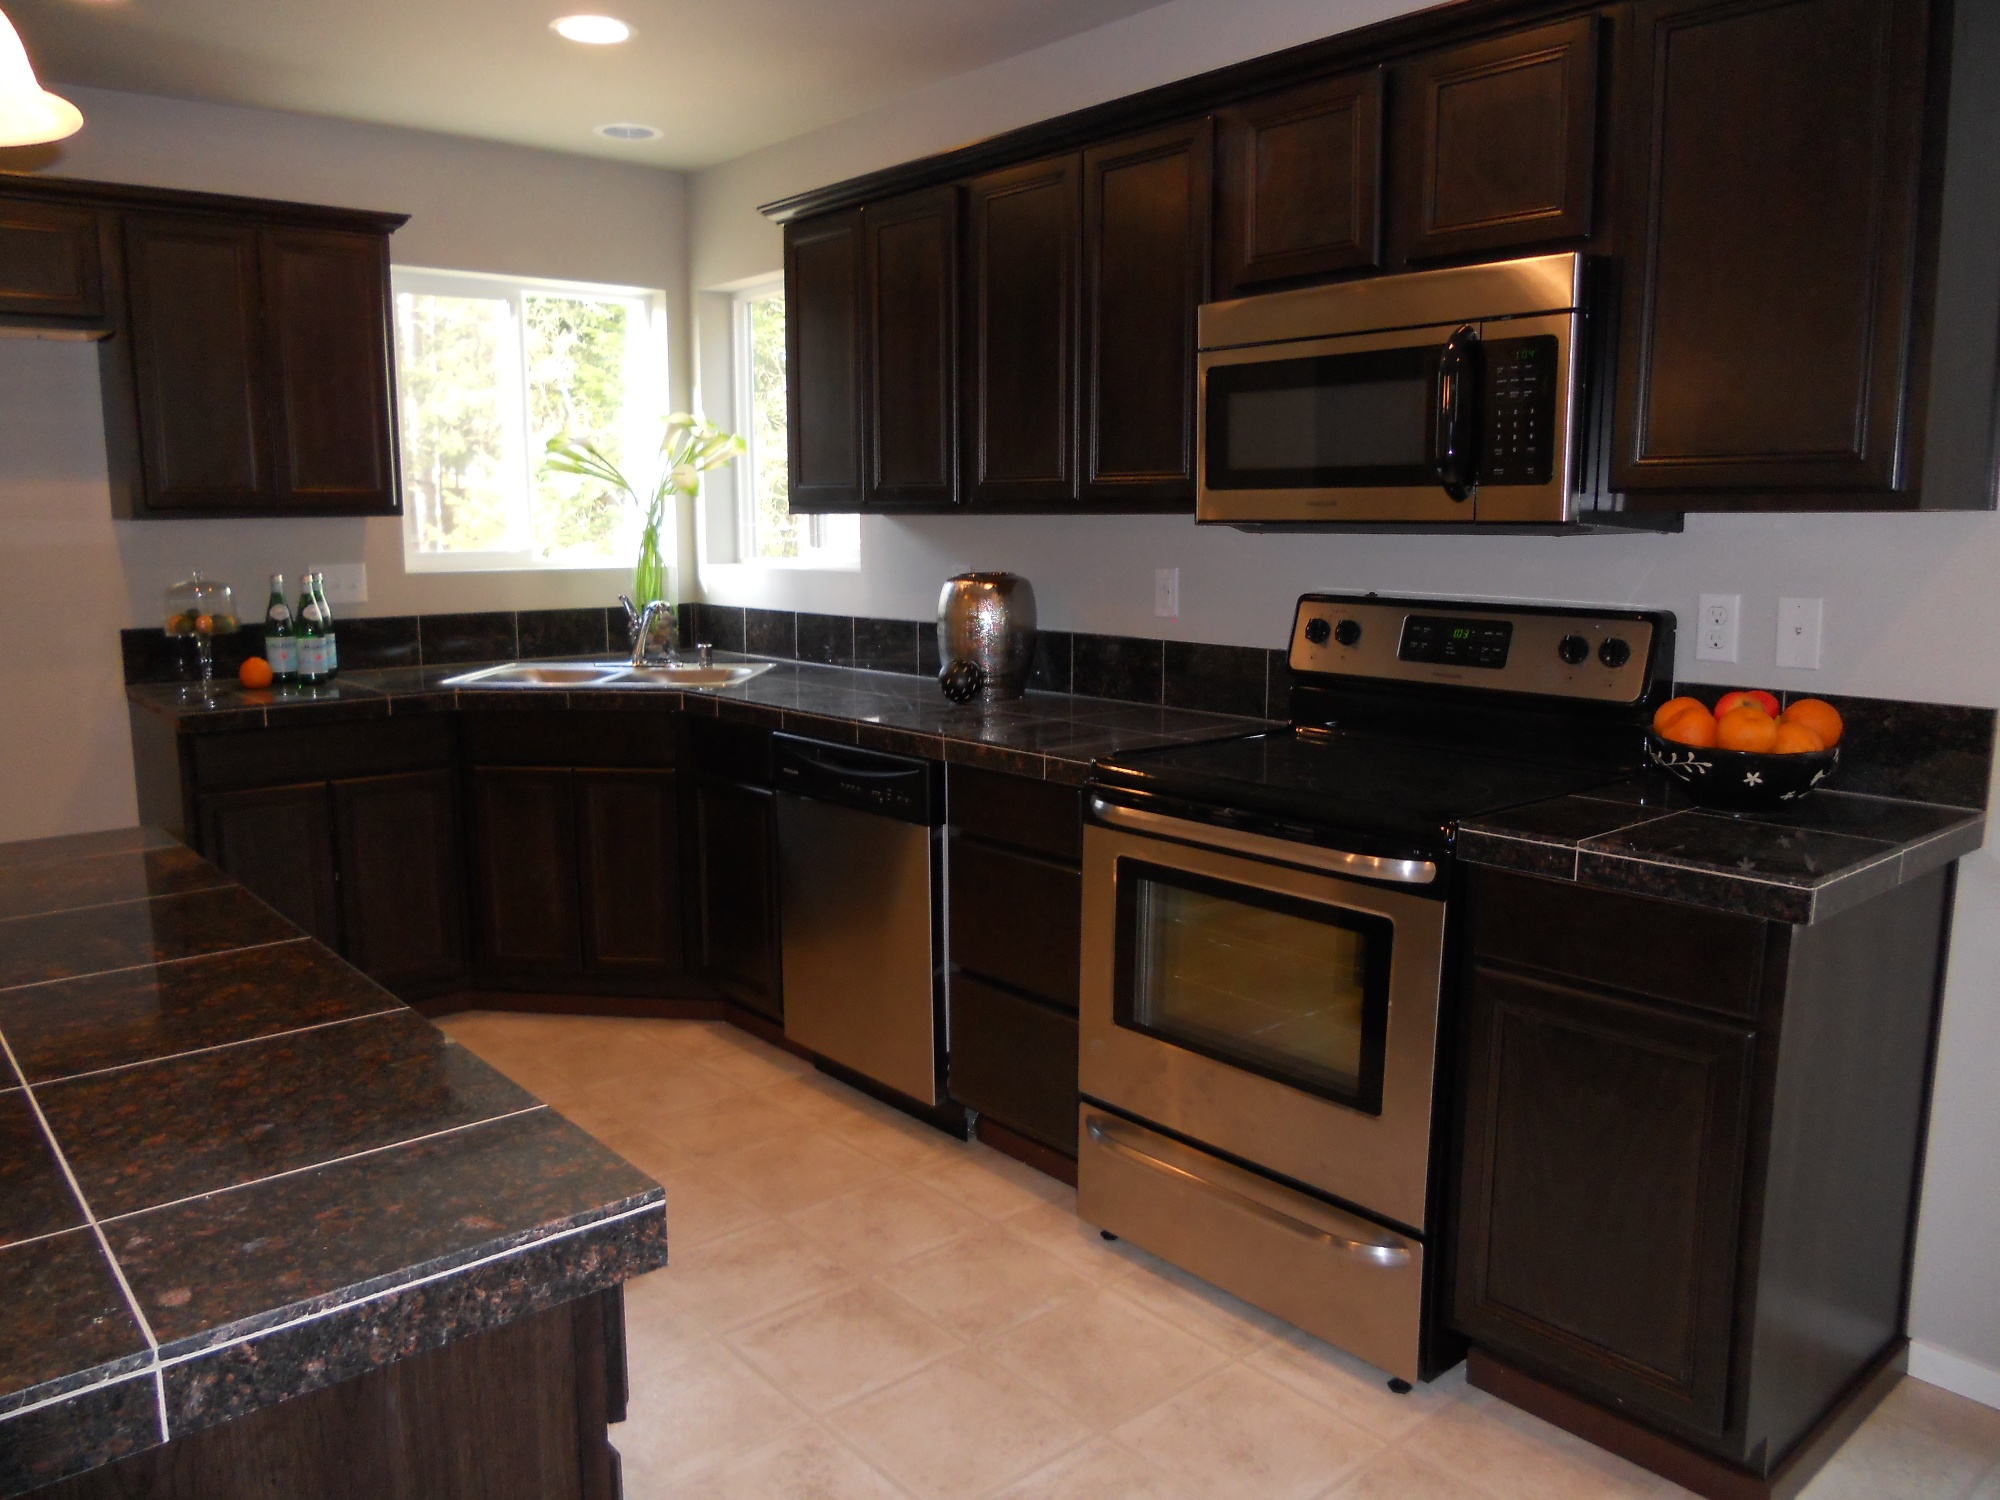 Dark Countertops With Dark Cabinets Model Home New Kitchen Design Regent Homes